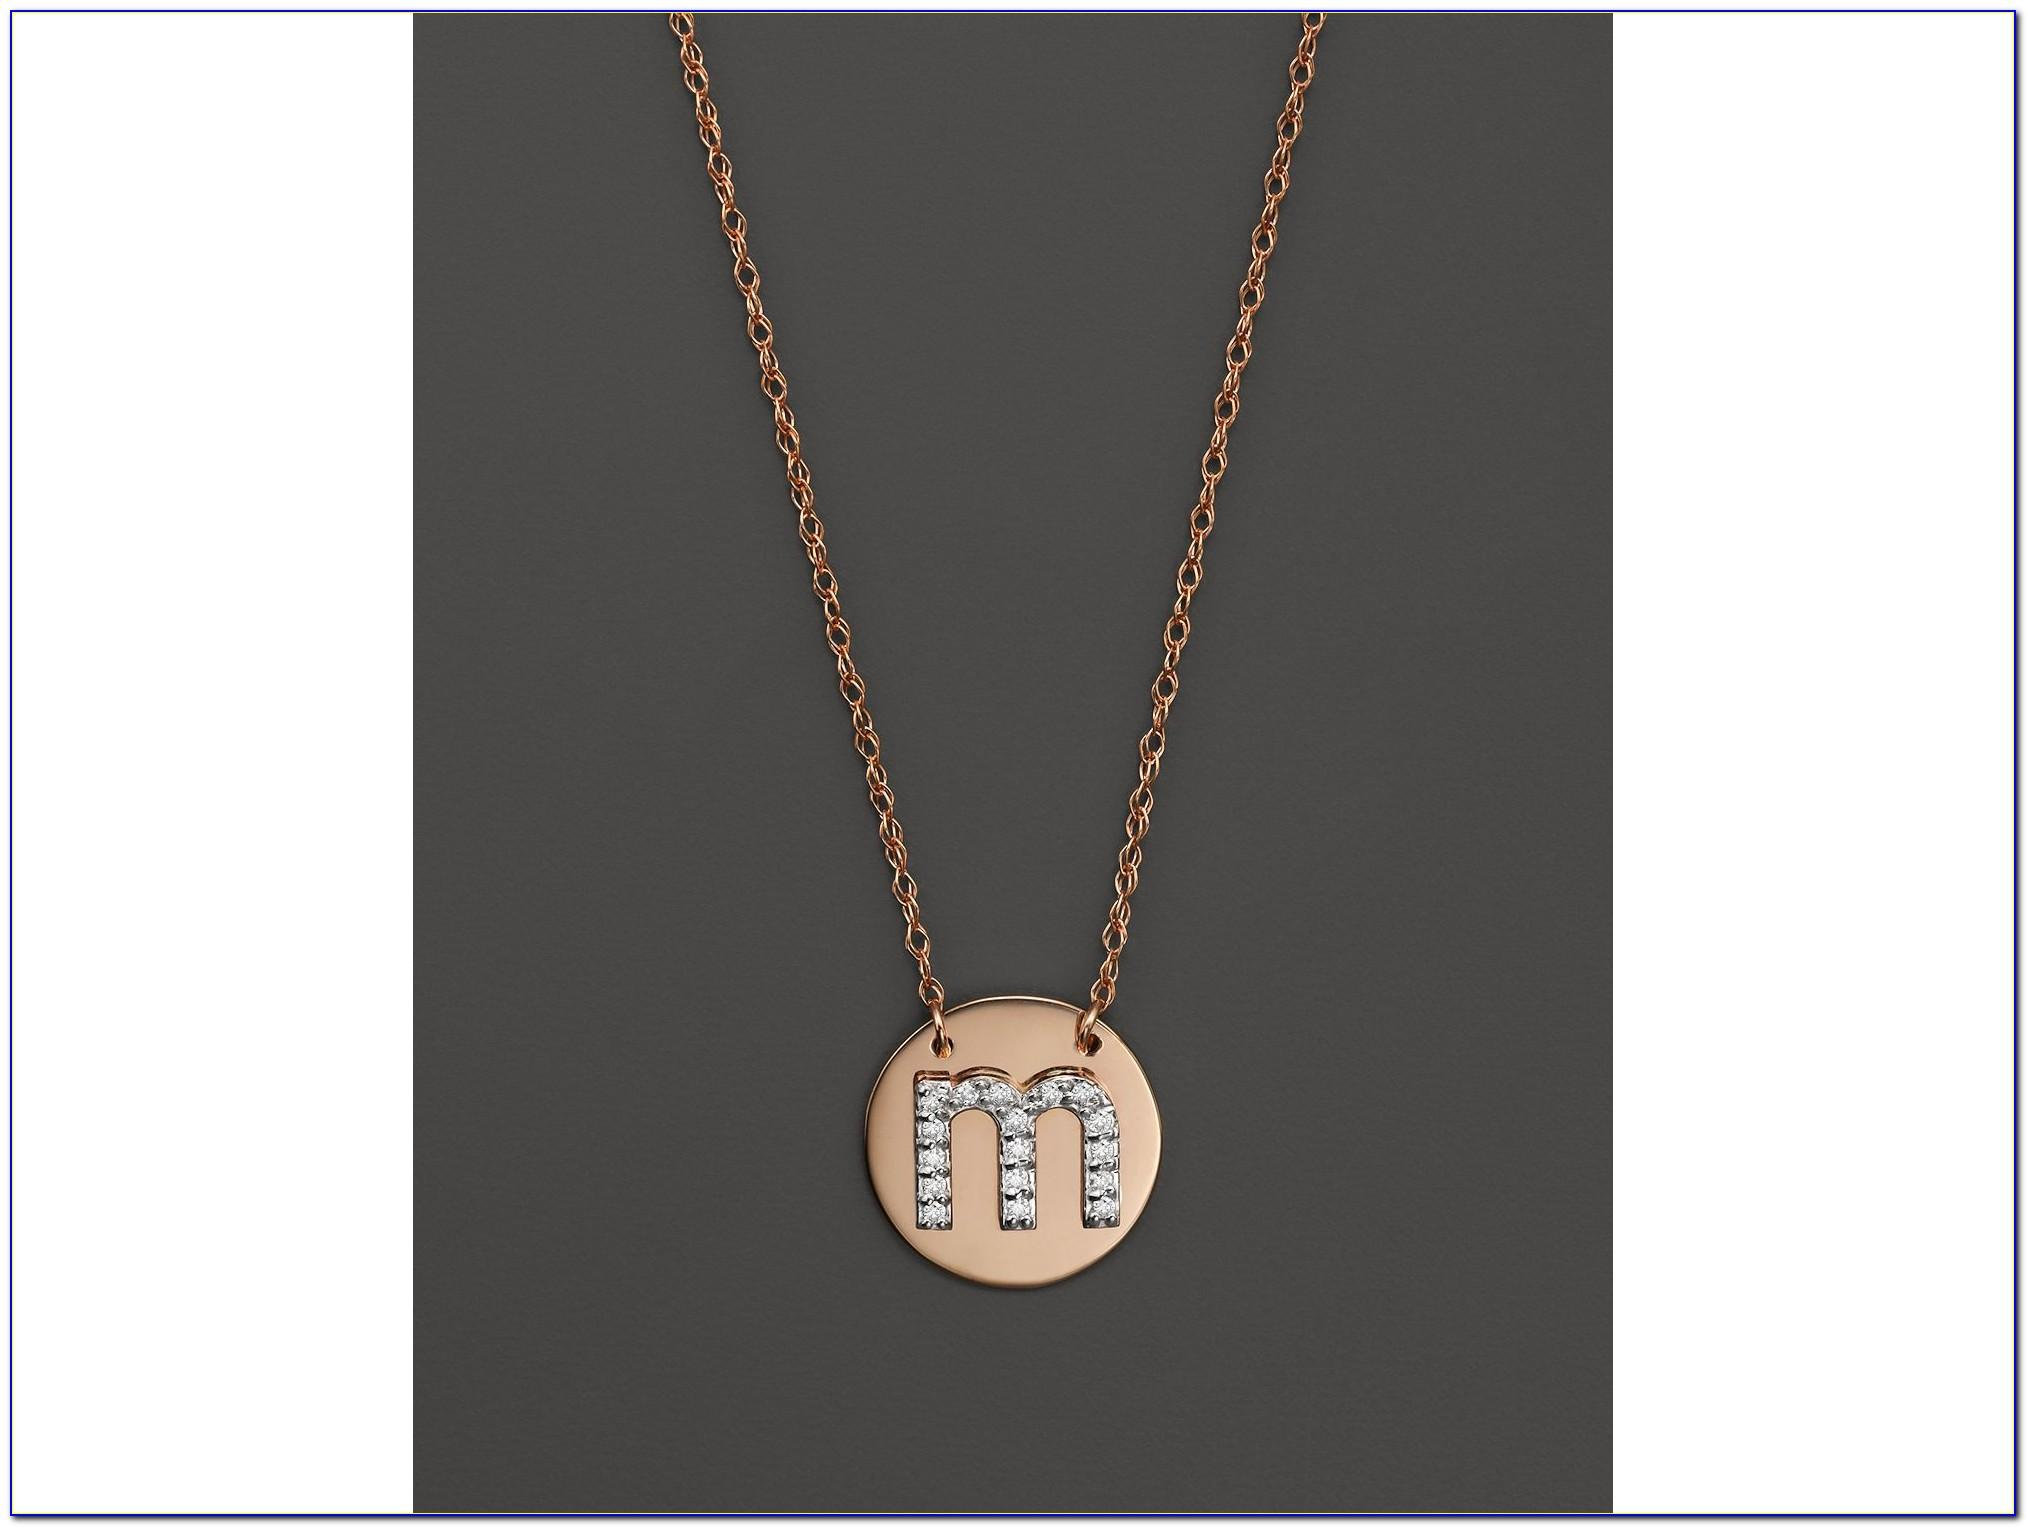 Spaced Letter Necklace Canada